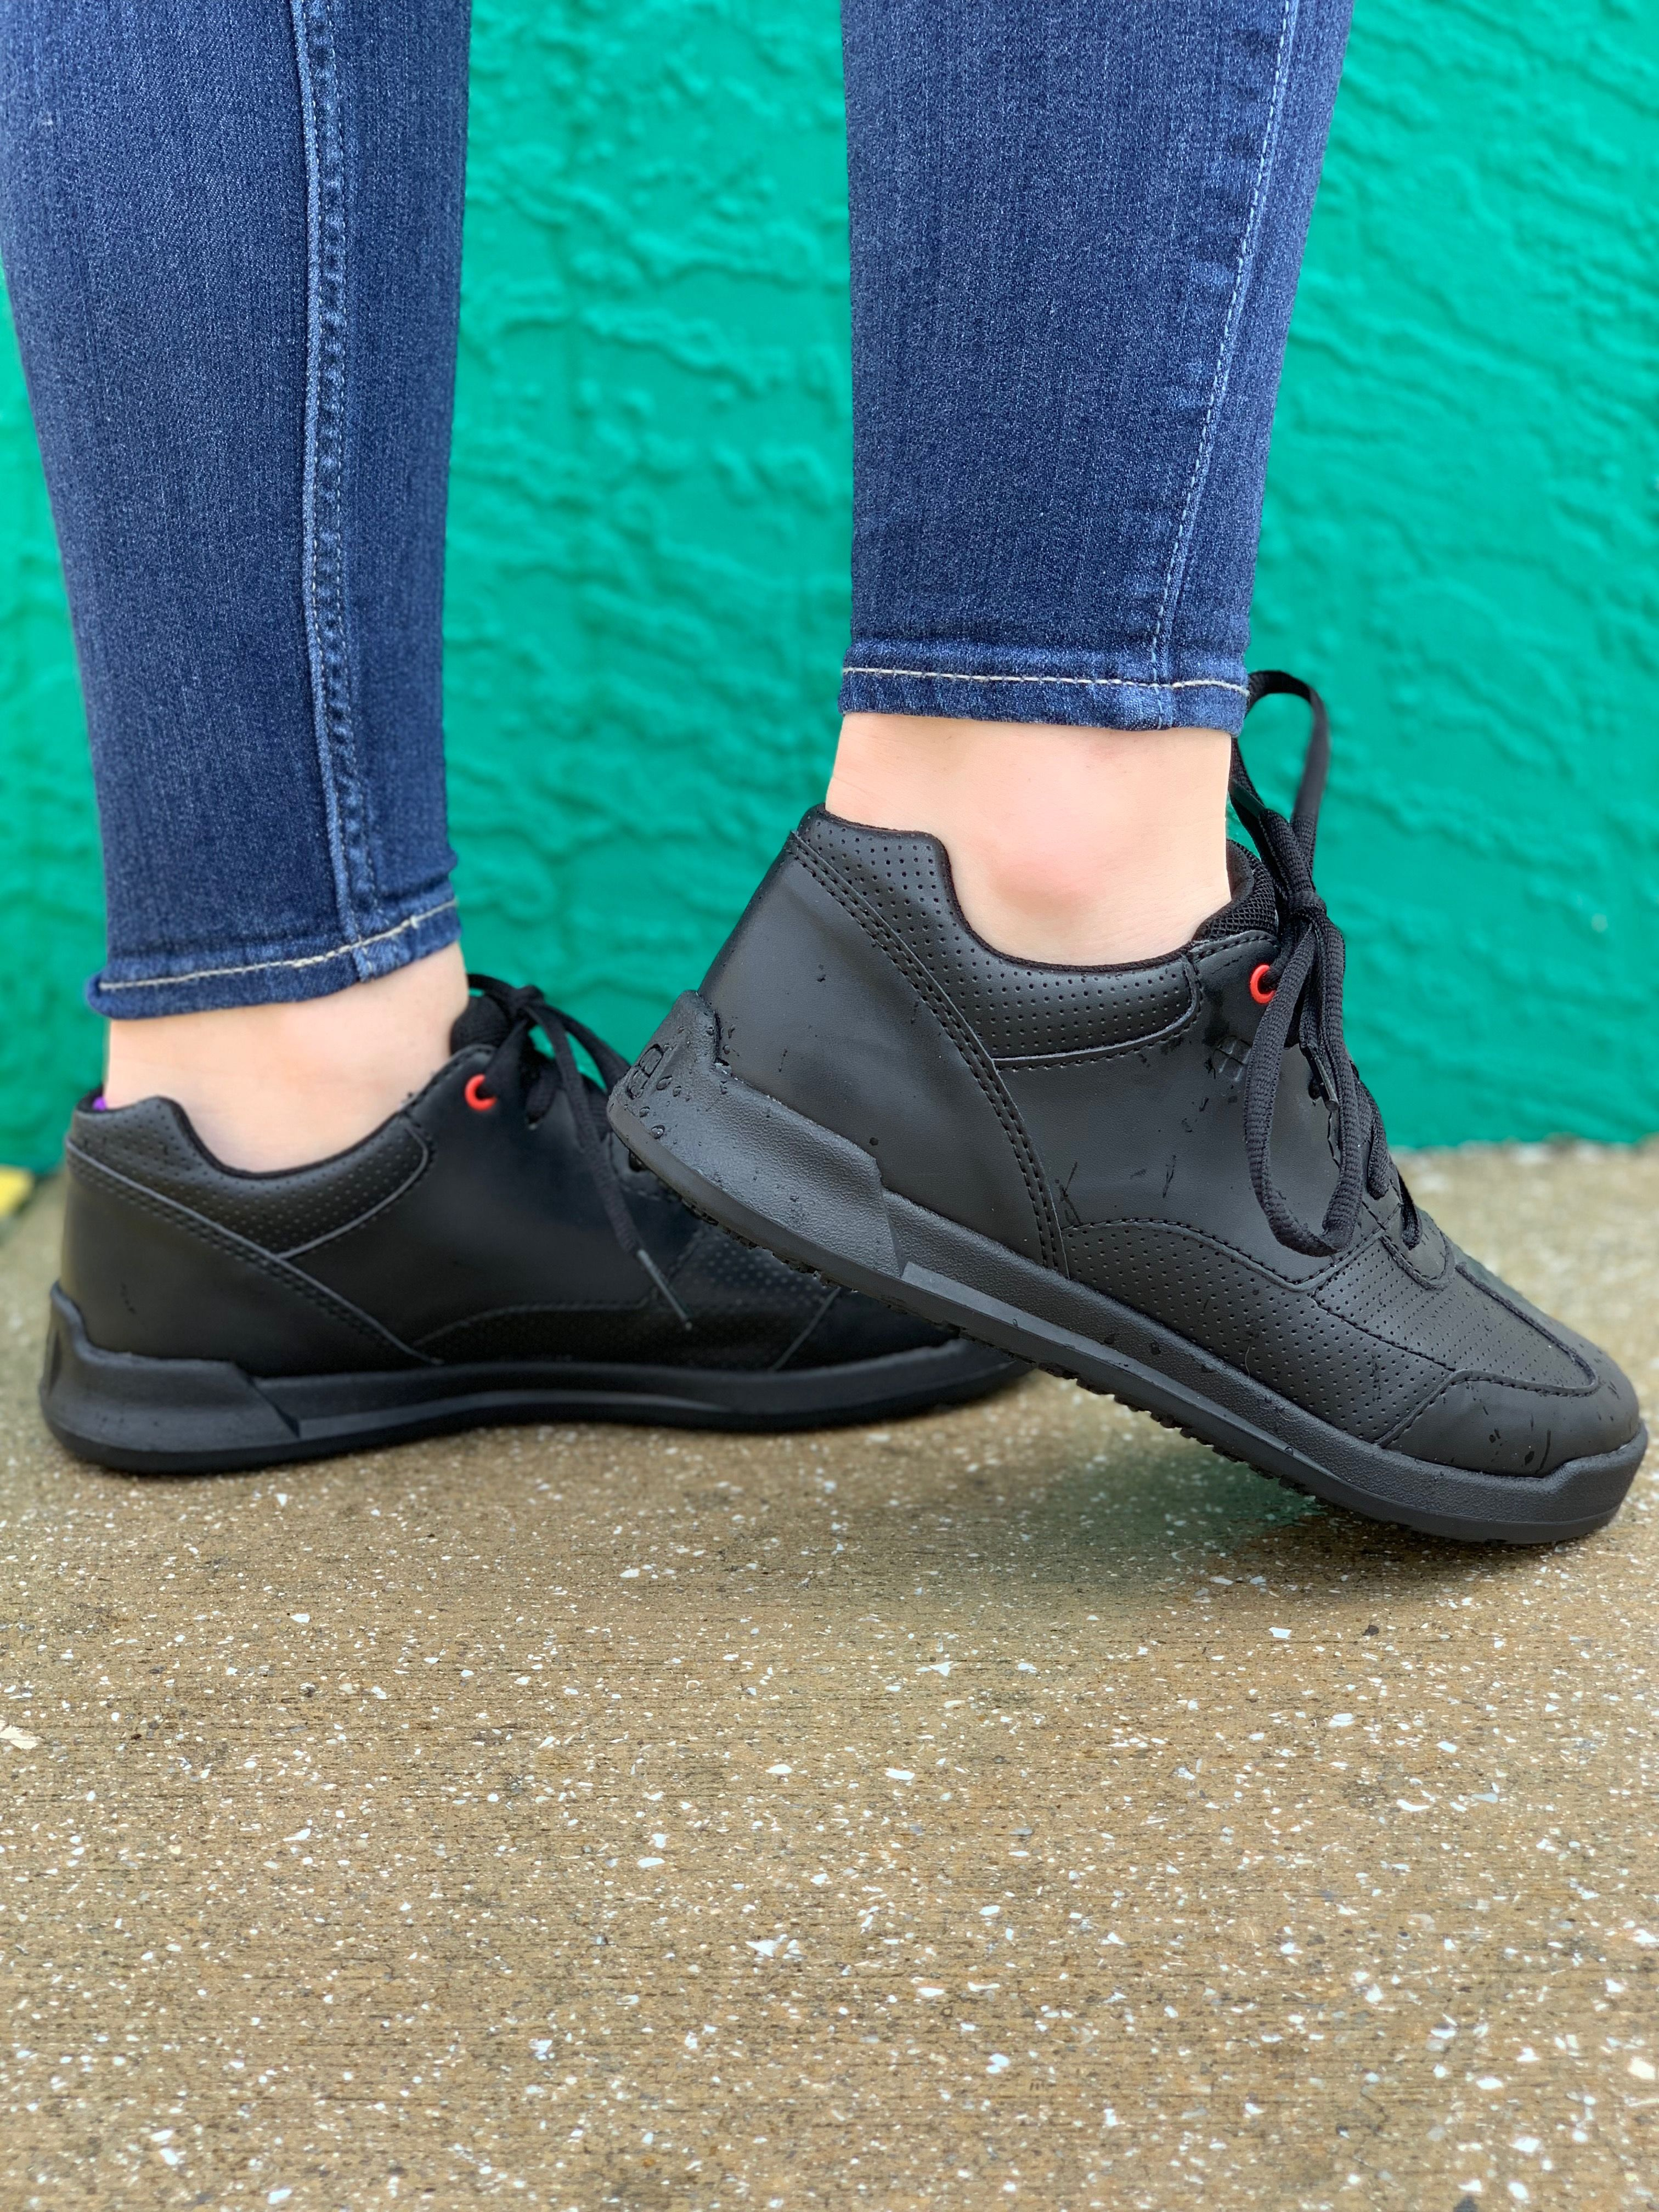 2ea3cb6a96ab Perform at your best with the slip-resistant Liberty athletic style shoe!  Perfect for long server shifts or a night out with friends!